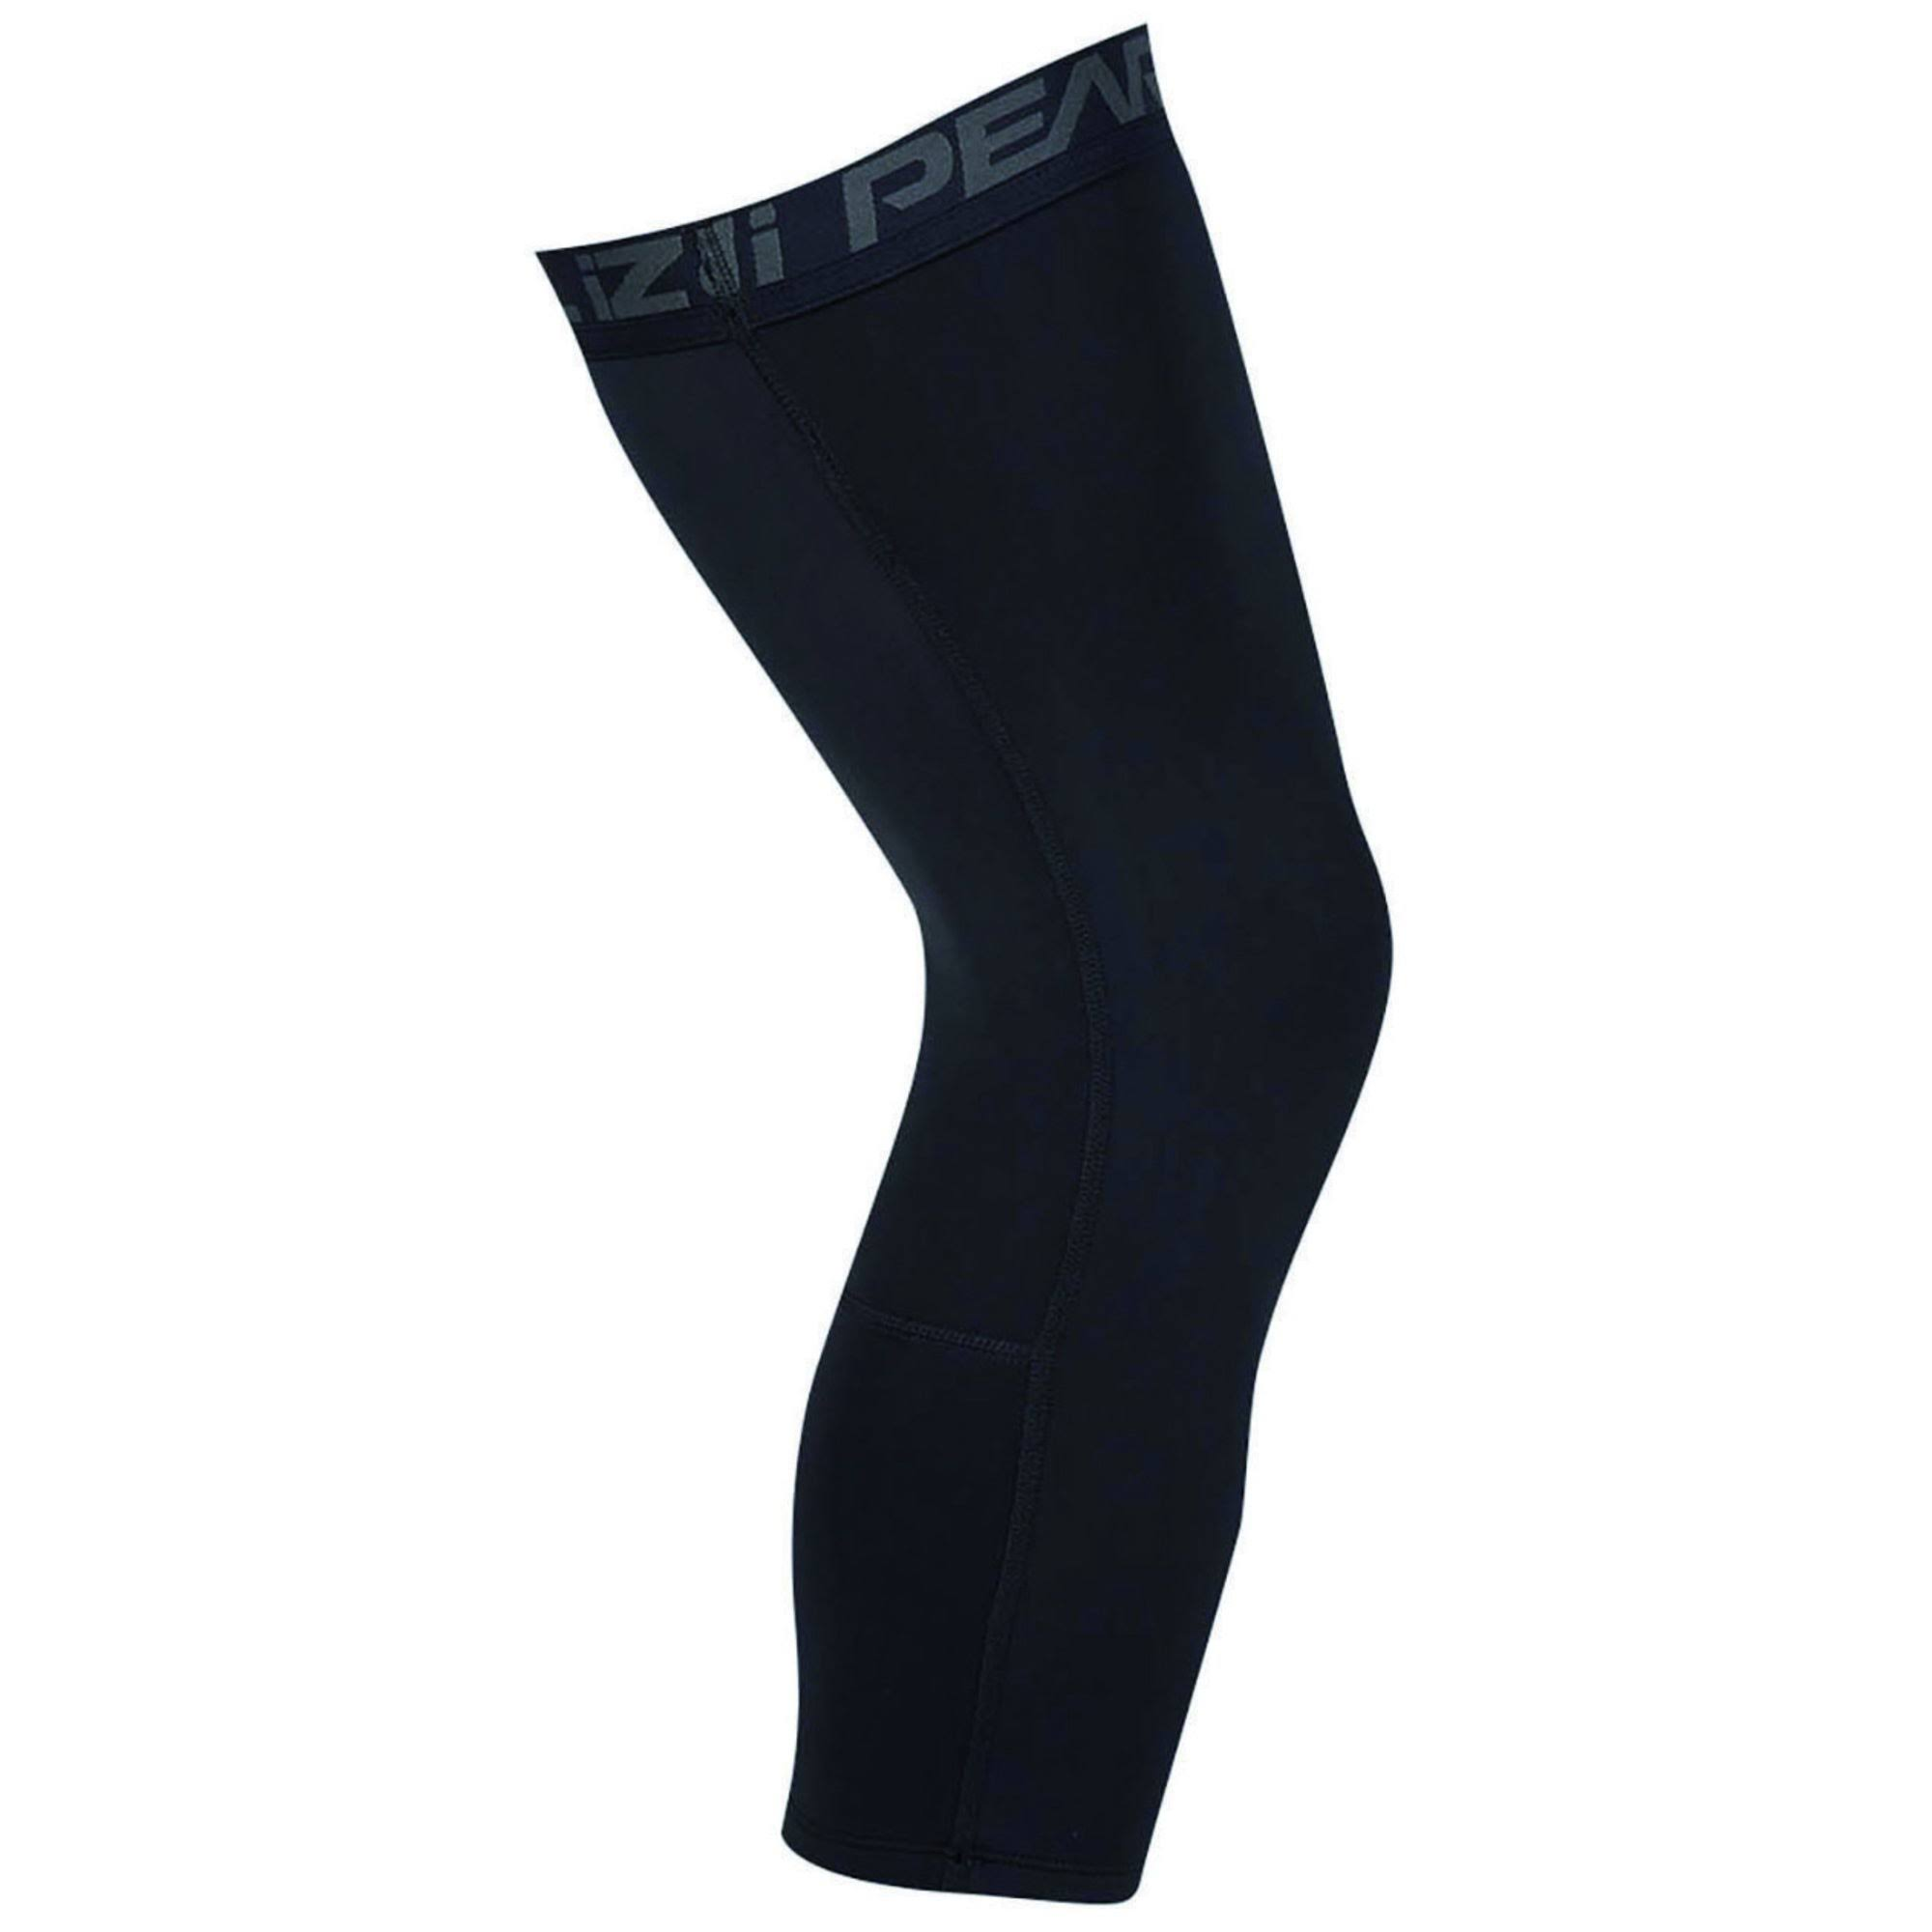 Pearl Izumi Elite Thermal Leg Warmers - Black, XX-Large